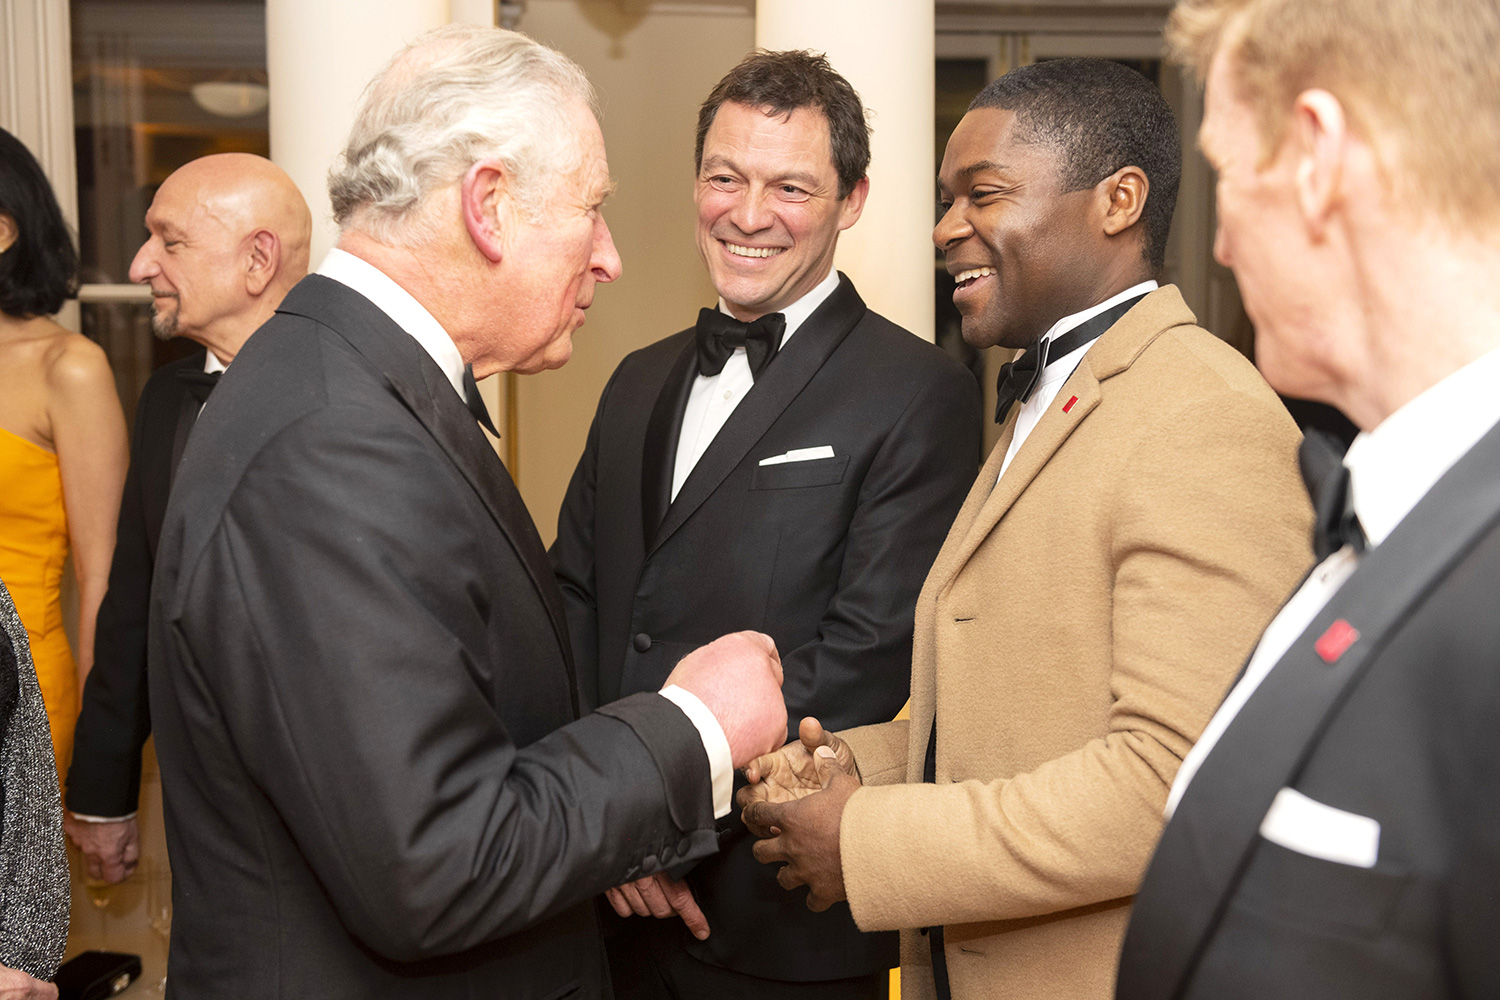 Prince Charles with Dominic West and David Oyelowo The Prince's Trust Invest in Futures Gala, London, UK - 13 Feb 2020